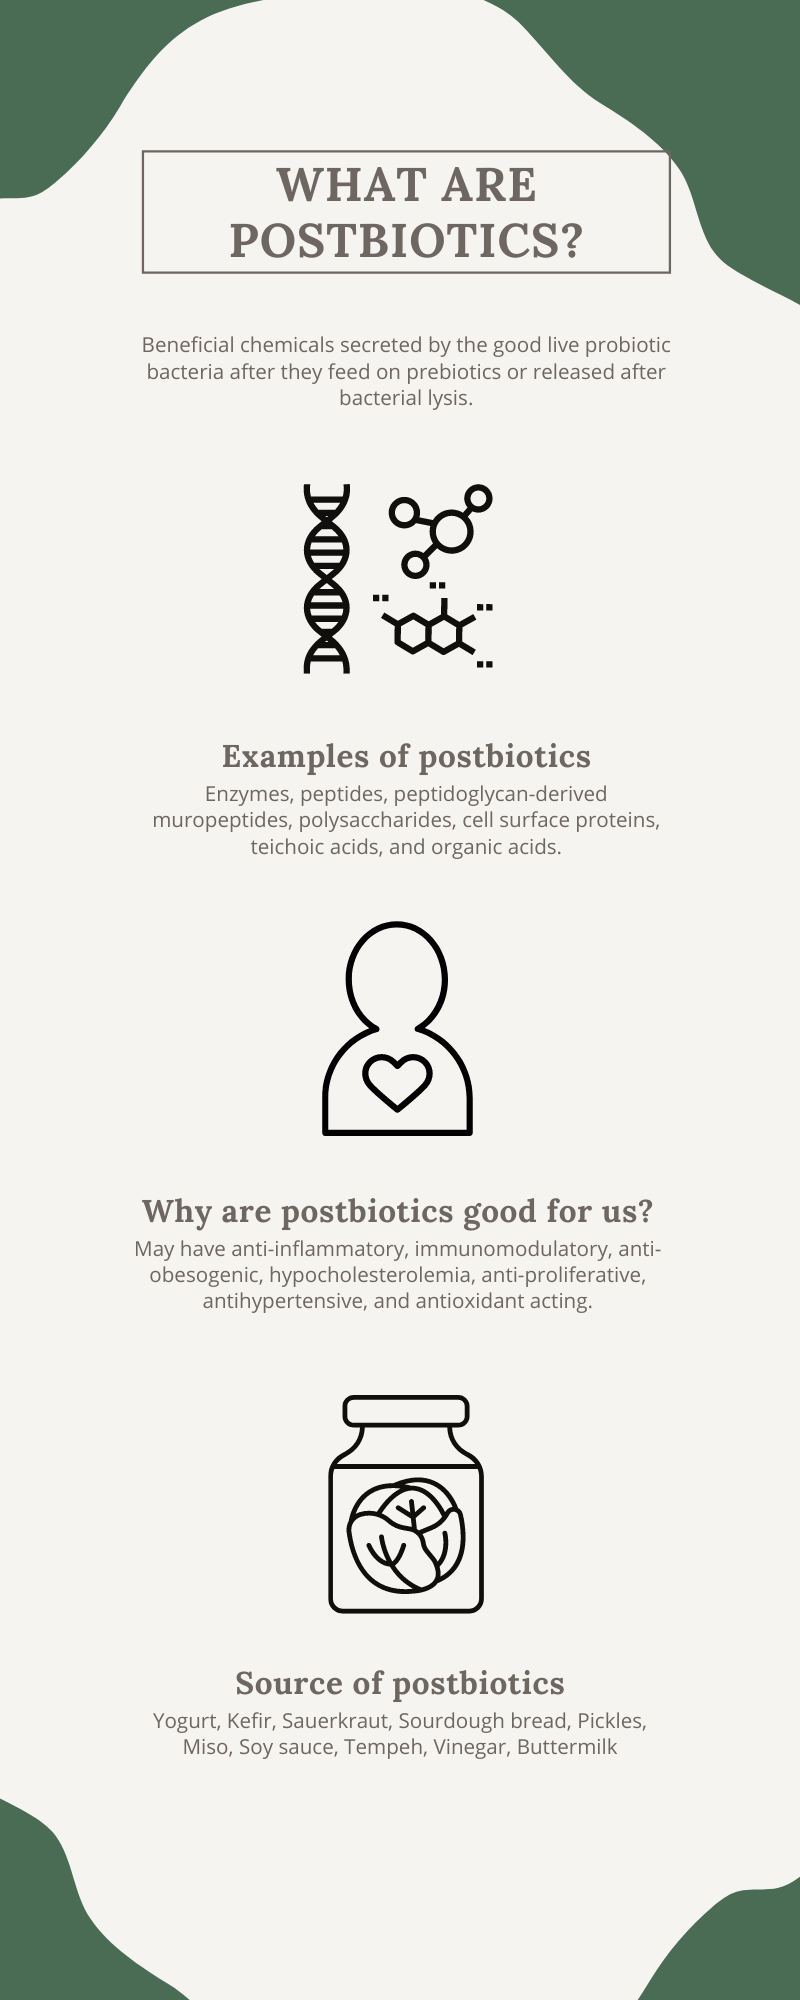 """What are postbiotics?  With growing interest around gut health, there is more and more confusing terminology used within the health food space, such as prebiotics, probiotics, and now postbiotics. Let's start with the most commonly known one; the probiotics, which are live """"good bacteria"""" that reside within our gut that are shown to support our immune system, gut health, and even mood. Prebiotics are the food for probiotics that keep them alive and healthy in our gut.  Postbiotics are beneficial chemicals secreted by the good live probiotic bacteria after they feed on prebiotics or released after bacterial lysis, such as enzymes, peptides, peptidoglycan-derived muropeptides, polysaccharides, cell surface proteins,  teichoic acids, and organic acids. Postbiotics are often obtained during the fermentation process.  So, in essence, postbiotic is the sum of what happens when prebiotics and probiotics come together. Postbiotics have recently been of interest due to their unique chemical structure, safety dosing, long shelf life, and its content in various signaling molecules that may have anti-inflammatory, immunomodulatory, anti-obesogenic, hypocholesterolemia, anti-proliferative, antihypertensive and antioxidant acting."""